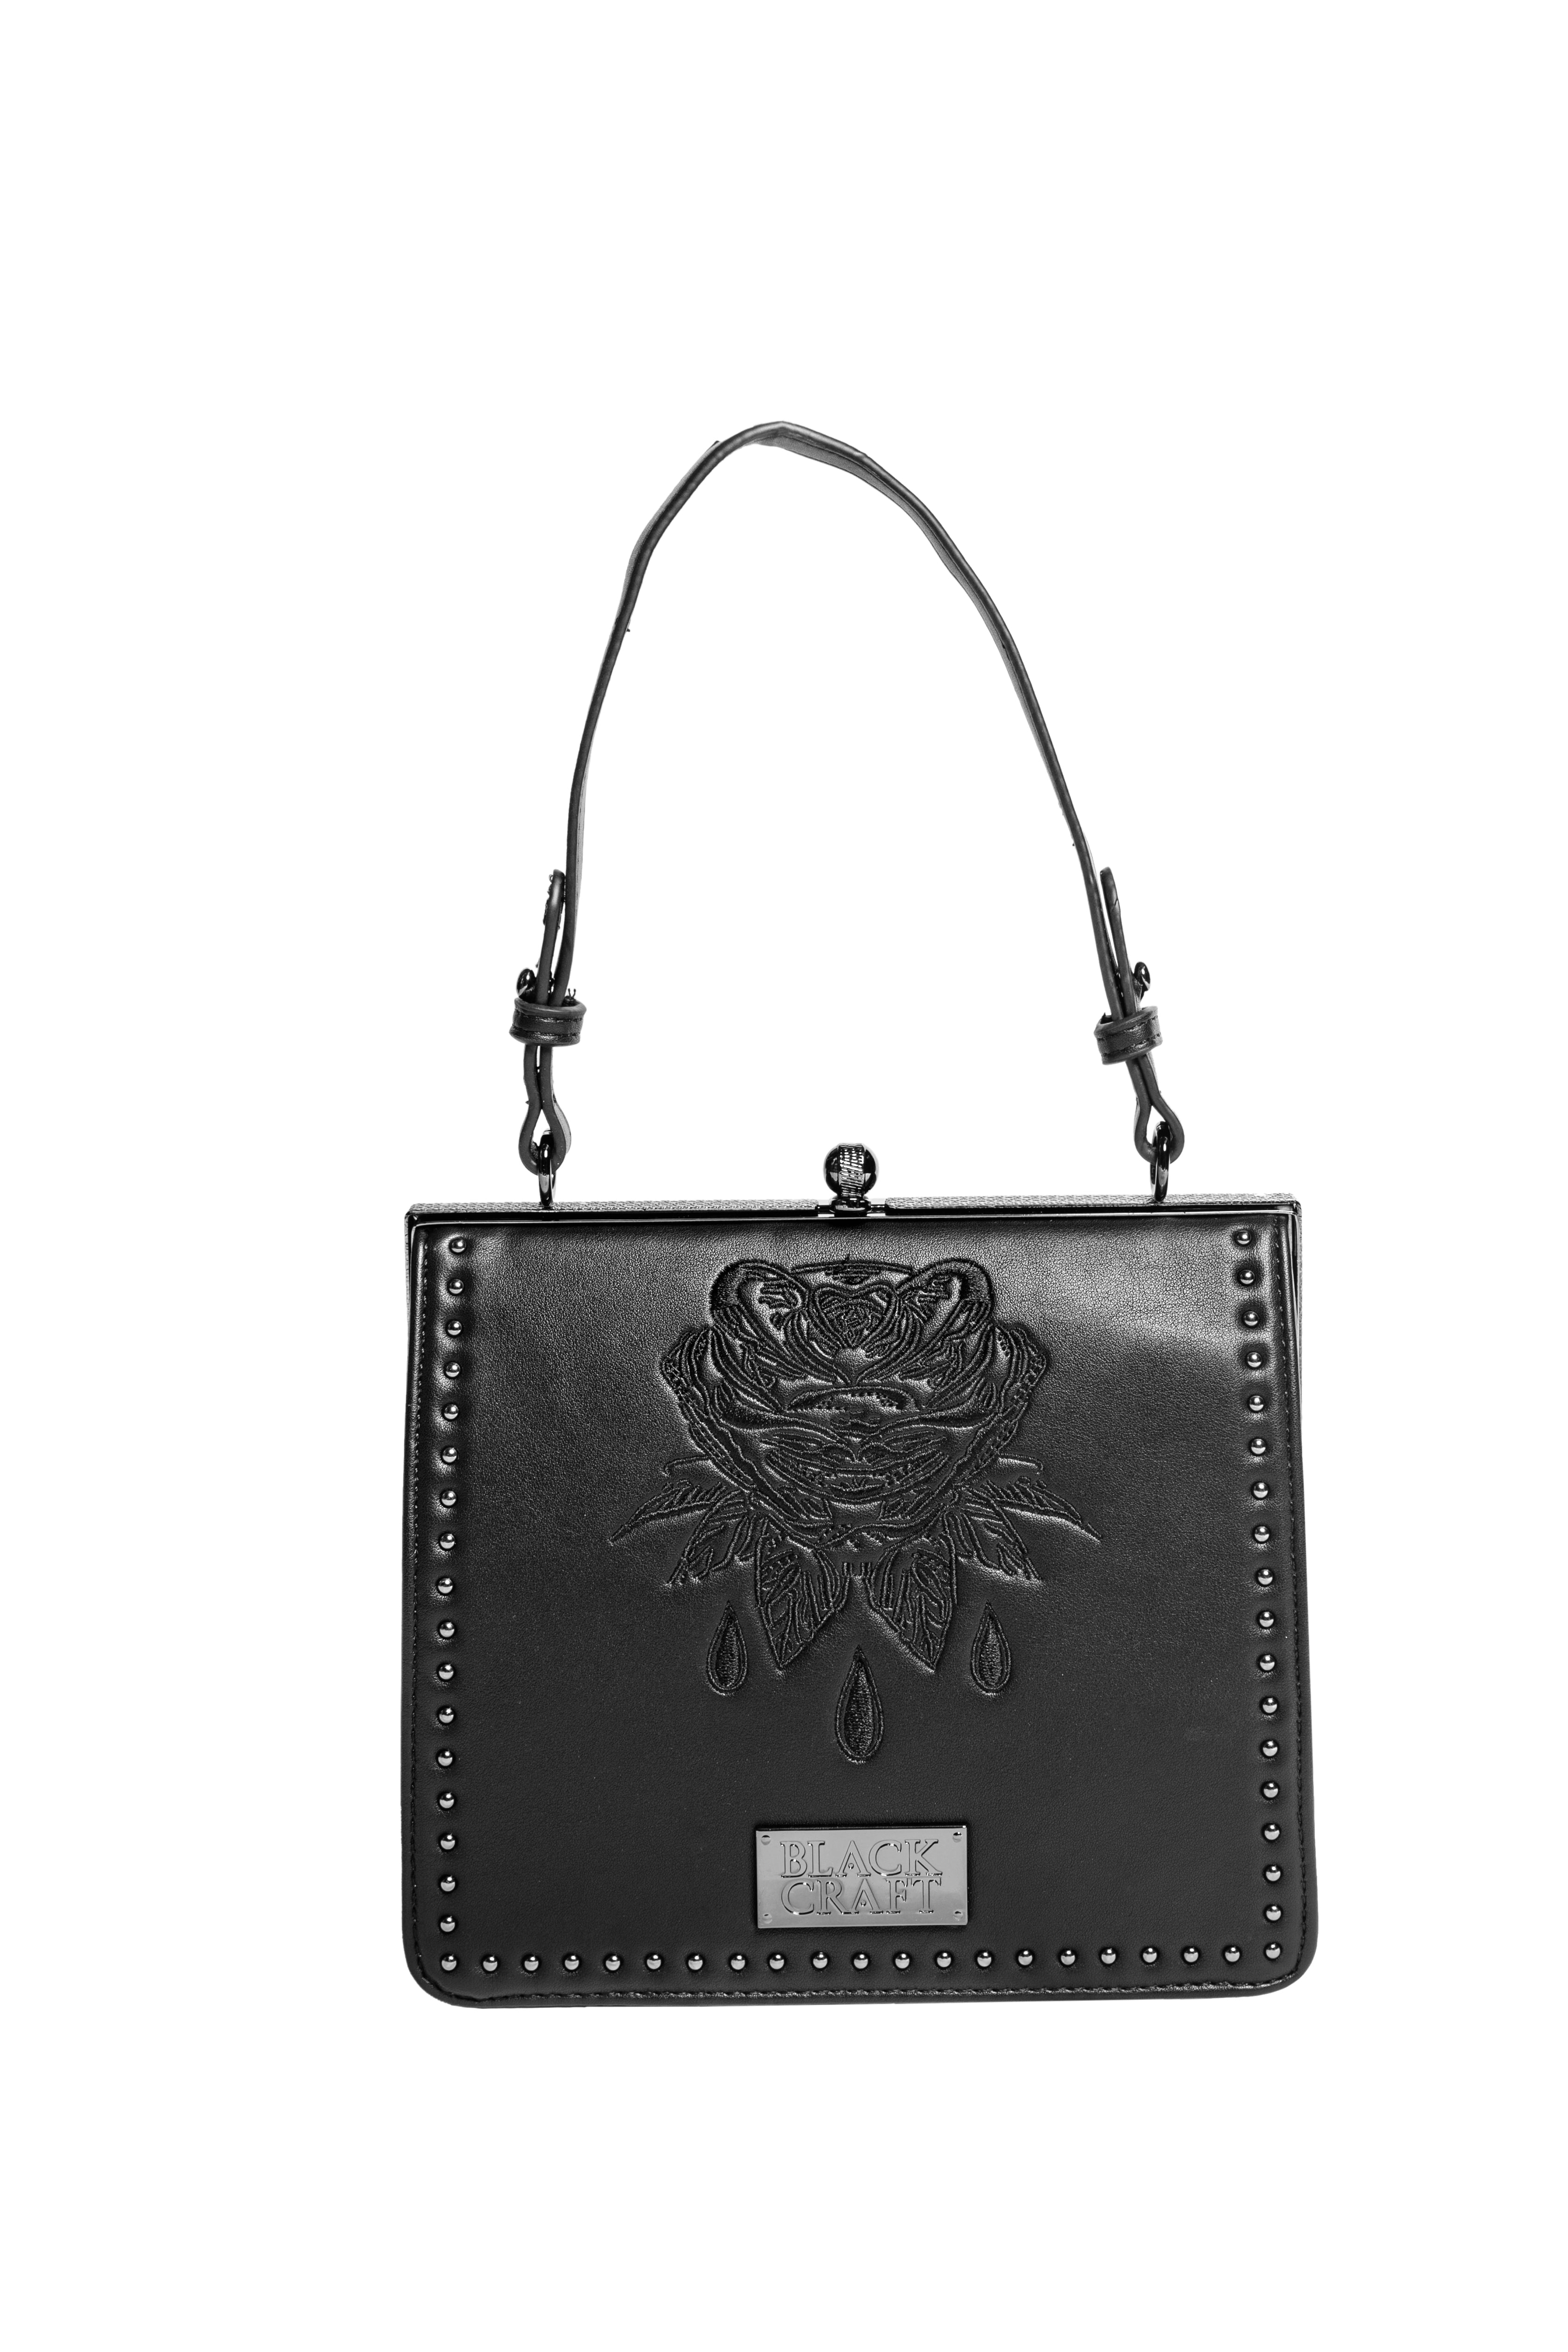 Spirits Of The Dead Embroidered - Frame Satchel